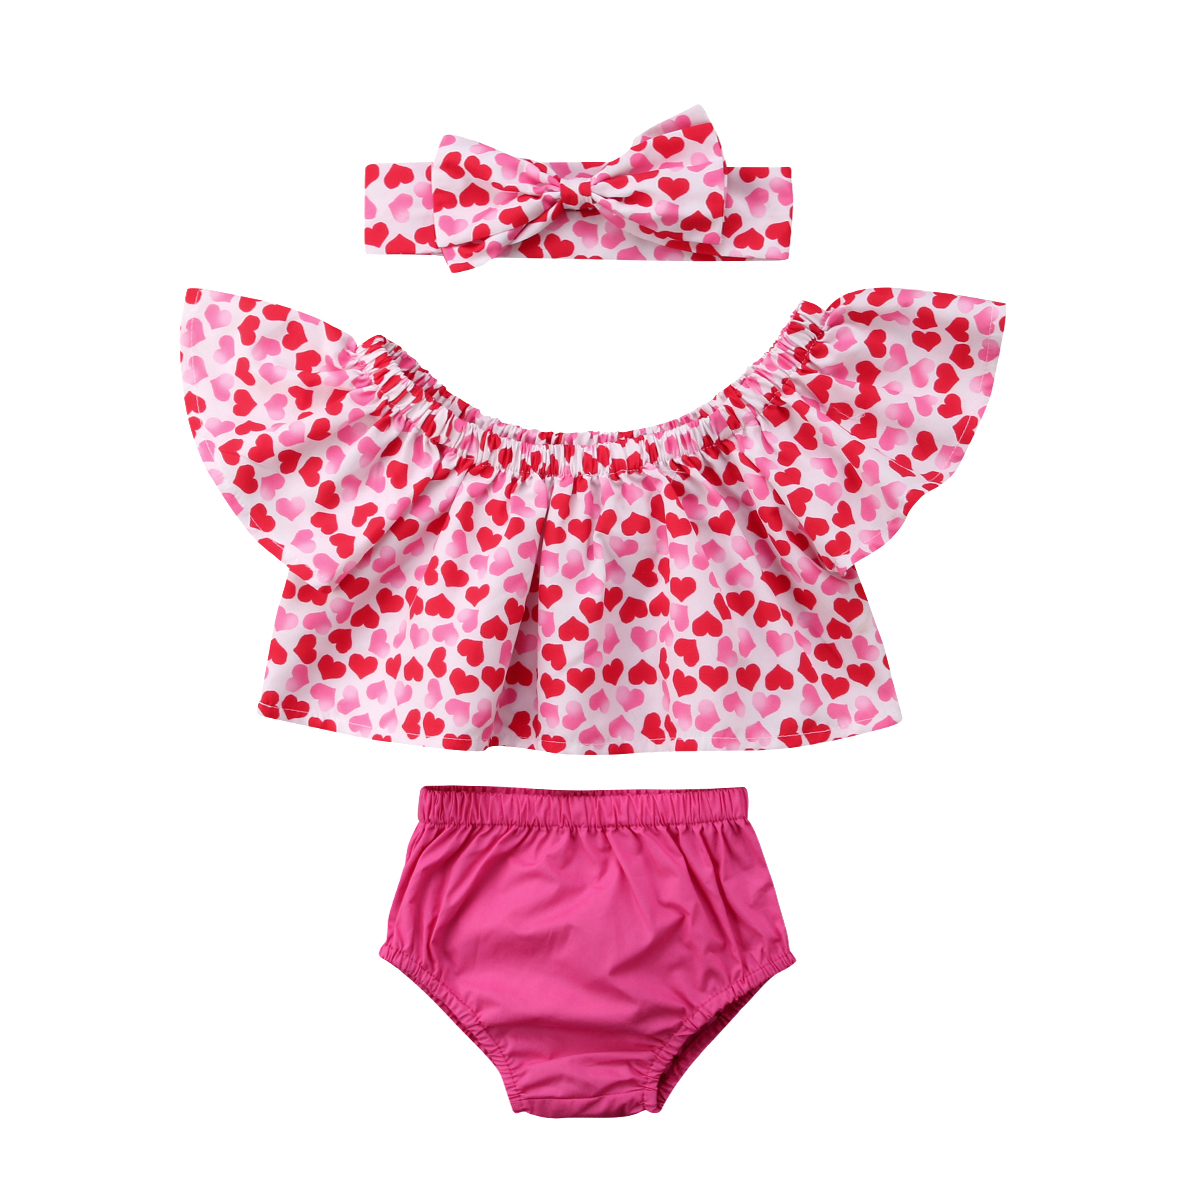 3Pcs Girl Clothes Summer Flower Toddler Baby Girl Off Shoulder Pink Heart Tops Shorts Headband Outfit 0-24M